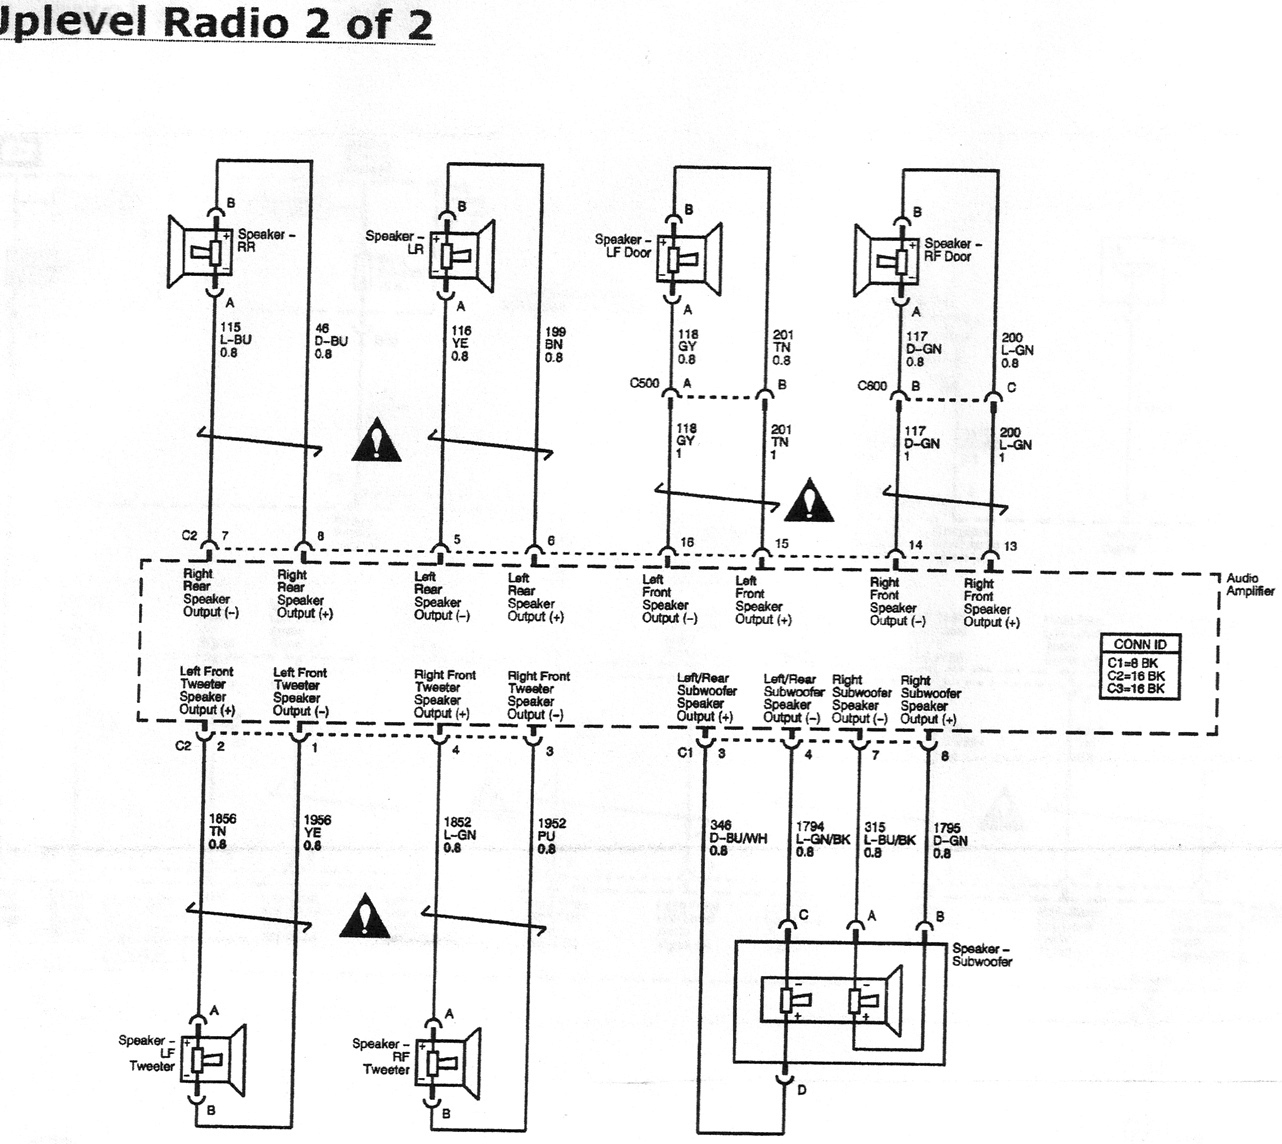 29802 monsoon amp speaker replacement monsoon_wiring_diagram_page_2 monsoon amp and speaker replacement saturn sky forums saturn 2007 grand prix monsoon wiring diagram at sewacar.co